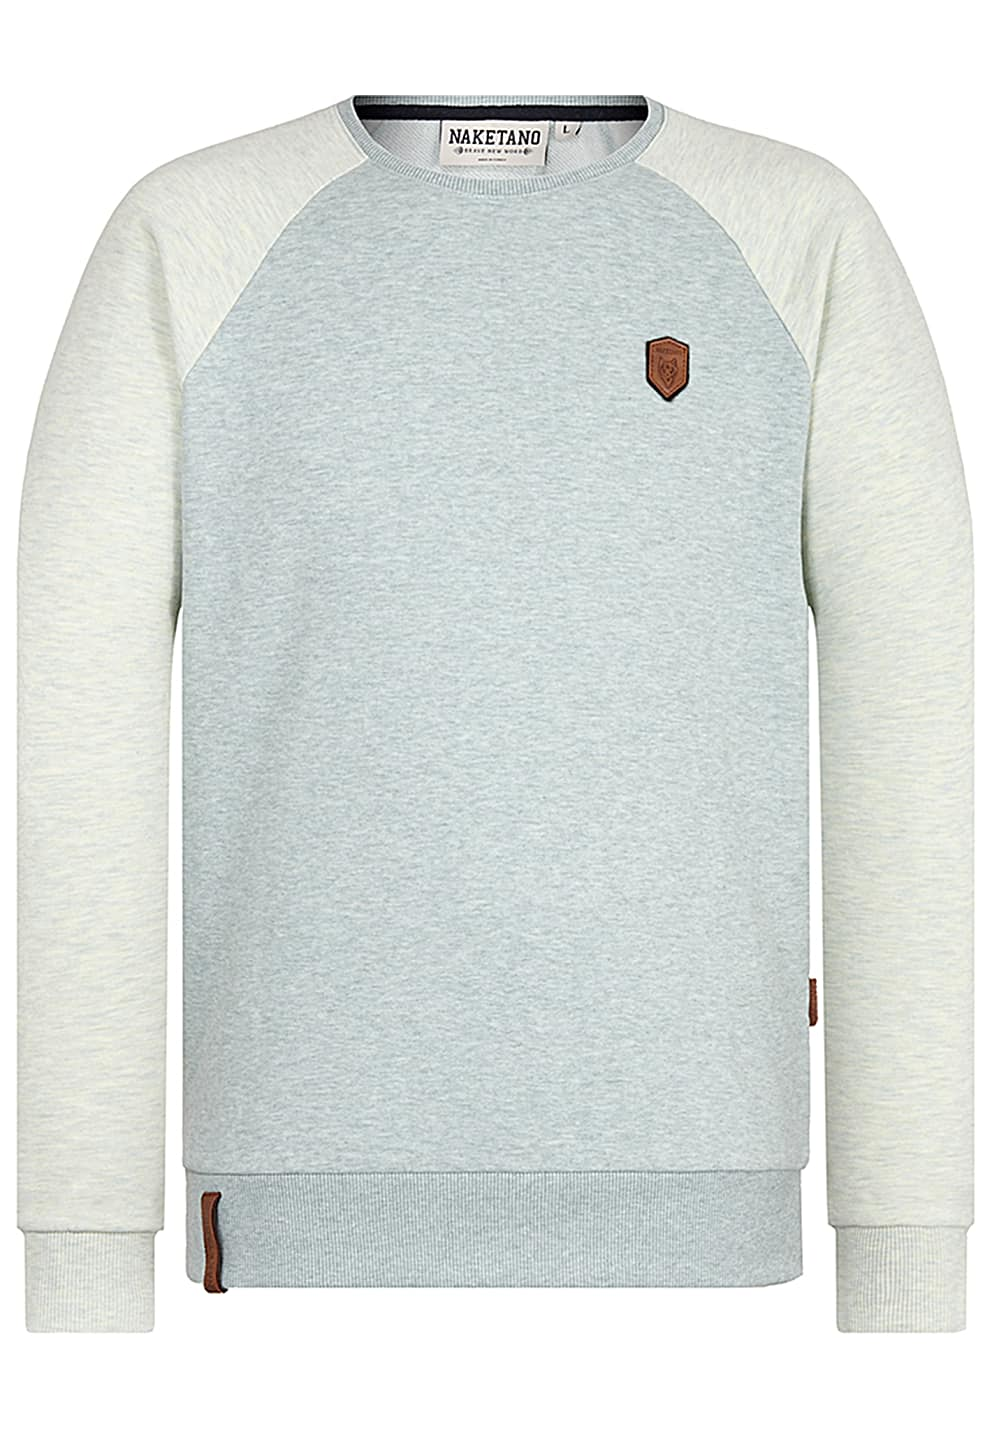 NAKETANO The Jordan Rules Sweatshirt for Men Blue